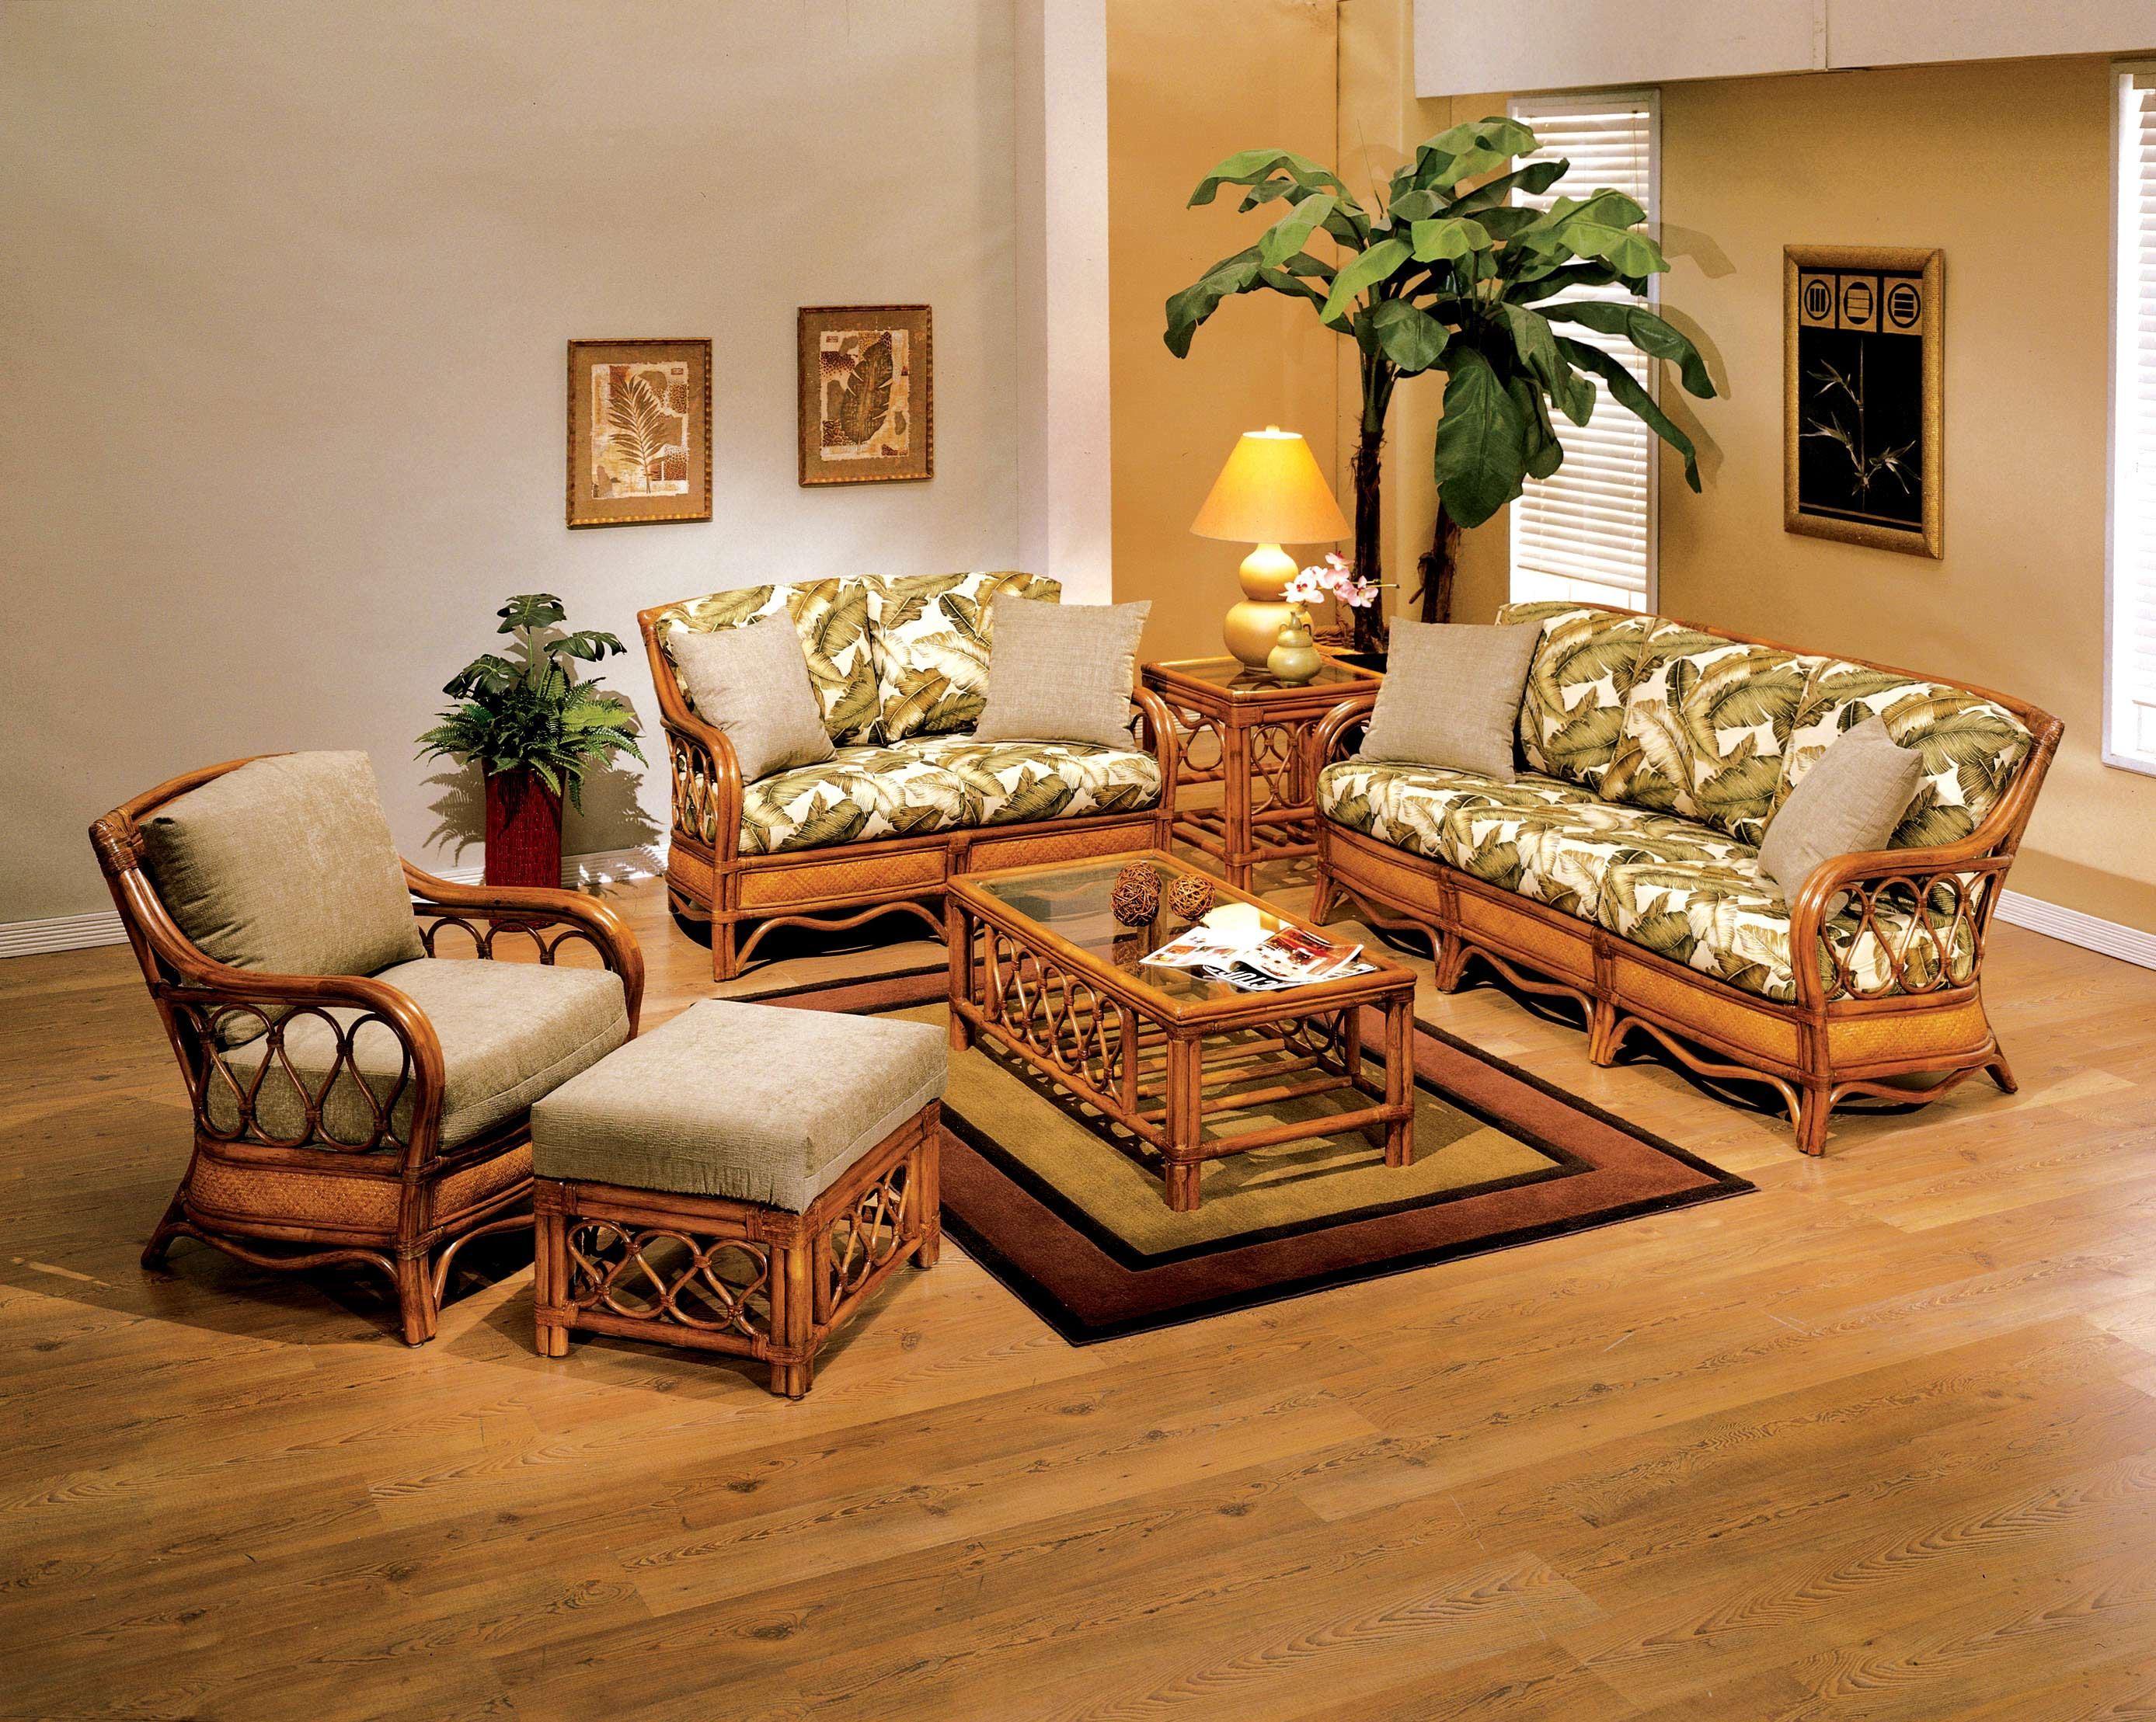 bamboo cane back chairs theater rattan, wicker, | rattan living room furniture gallery 1 ratan, and ...